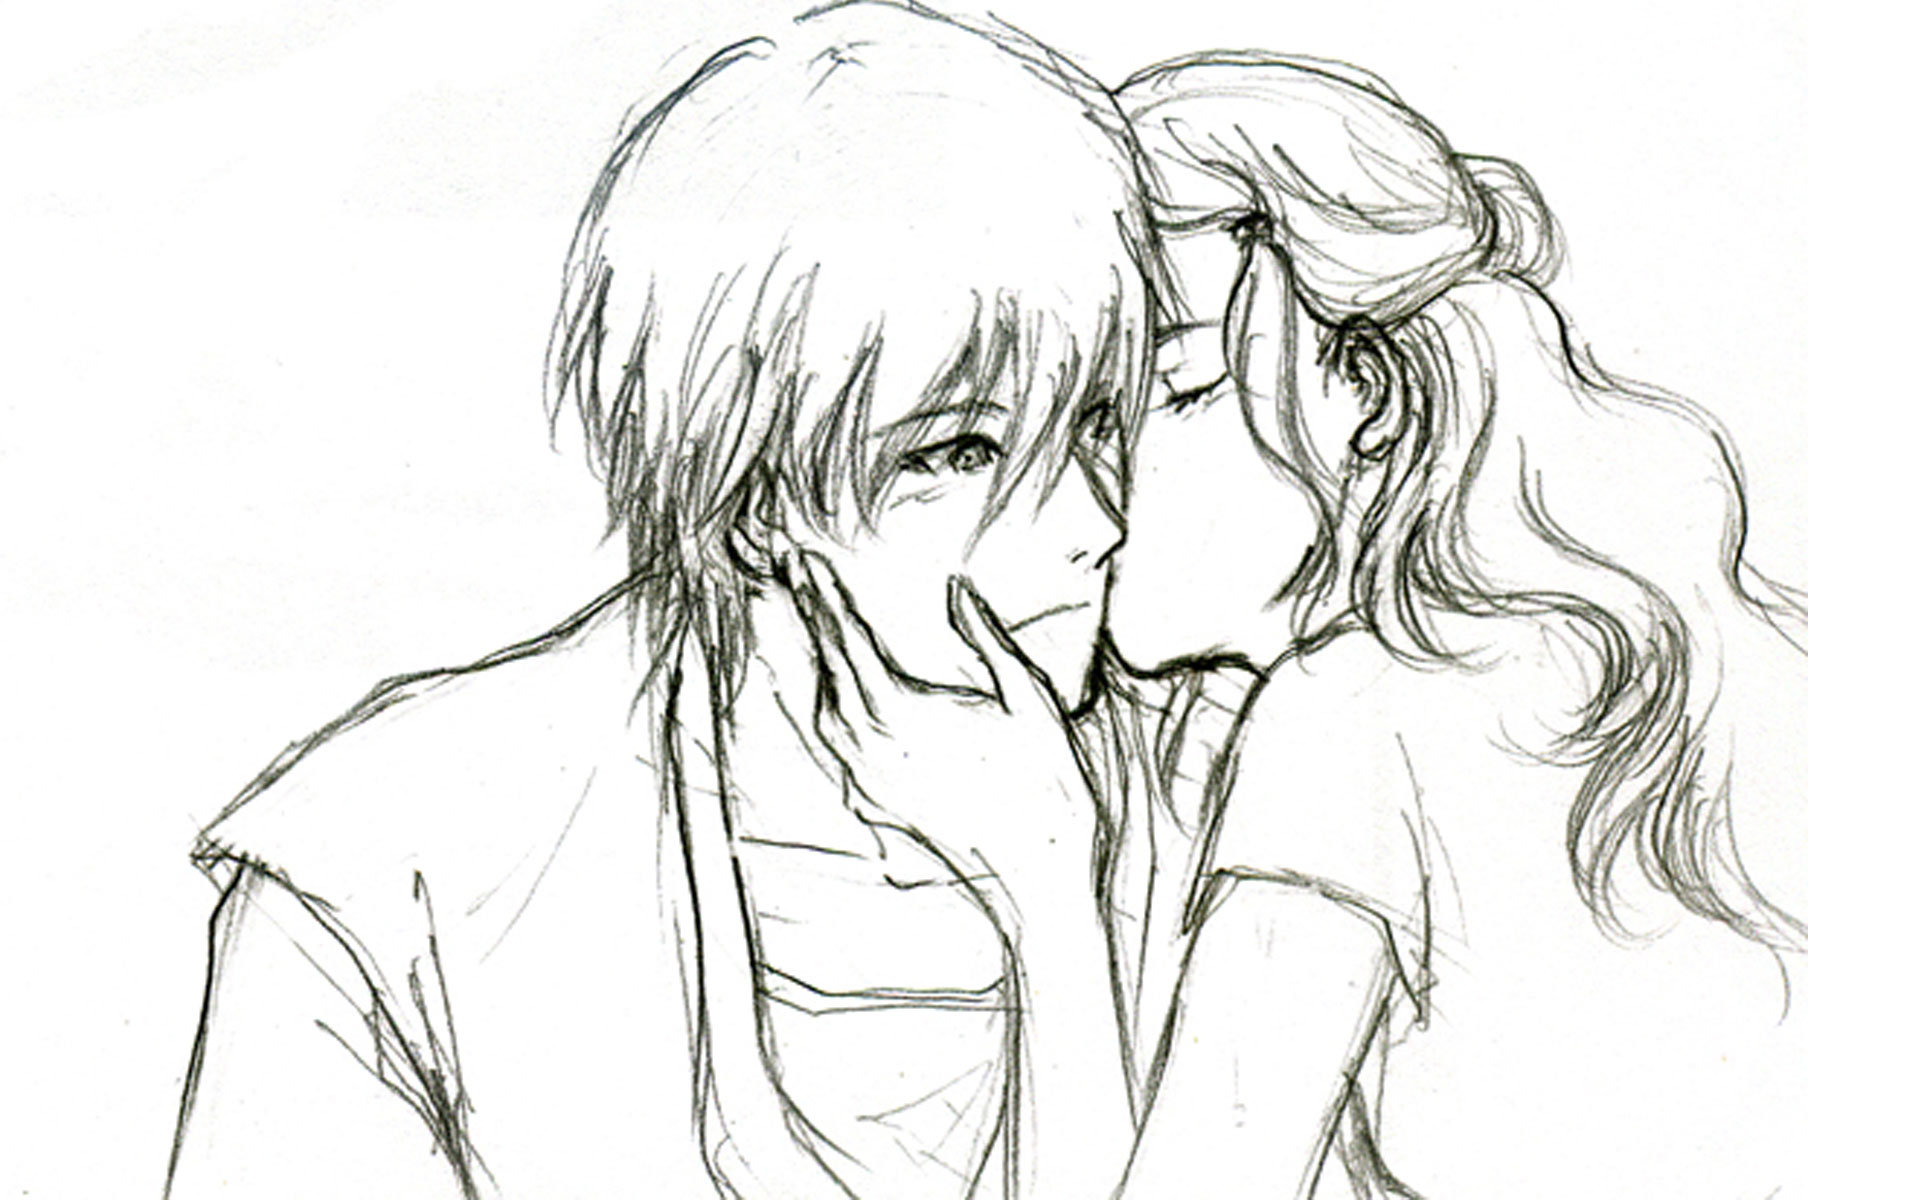 1920x1200 anime cute couple pencil sketch romantic anime couples kissing